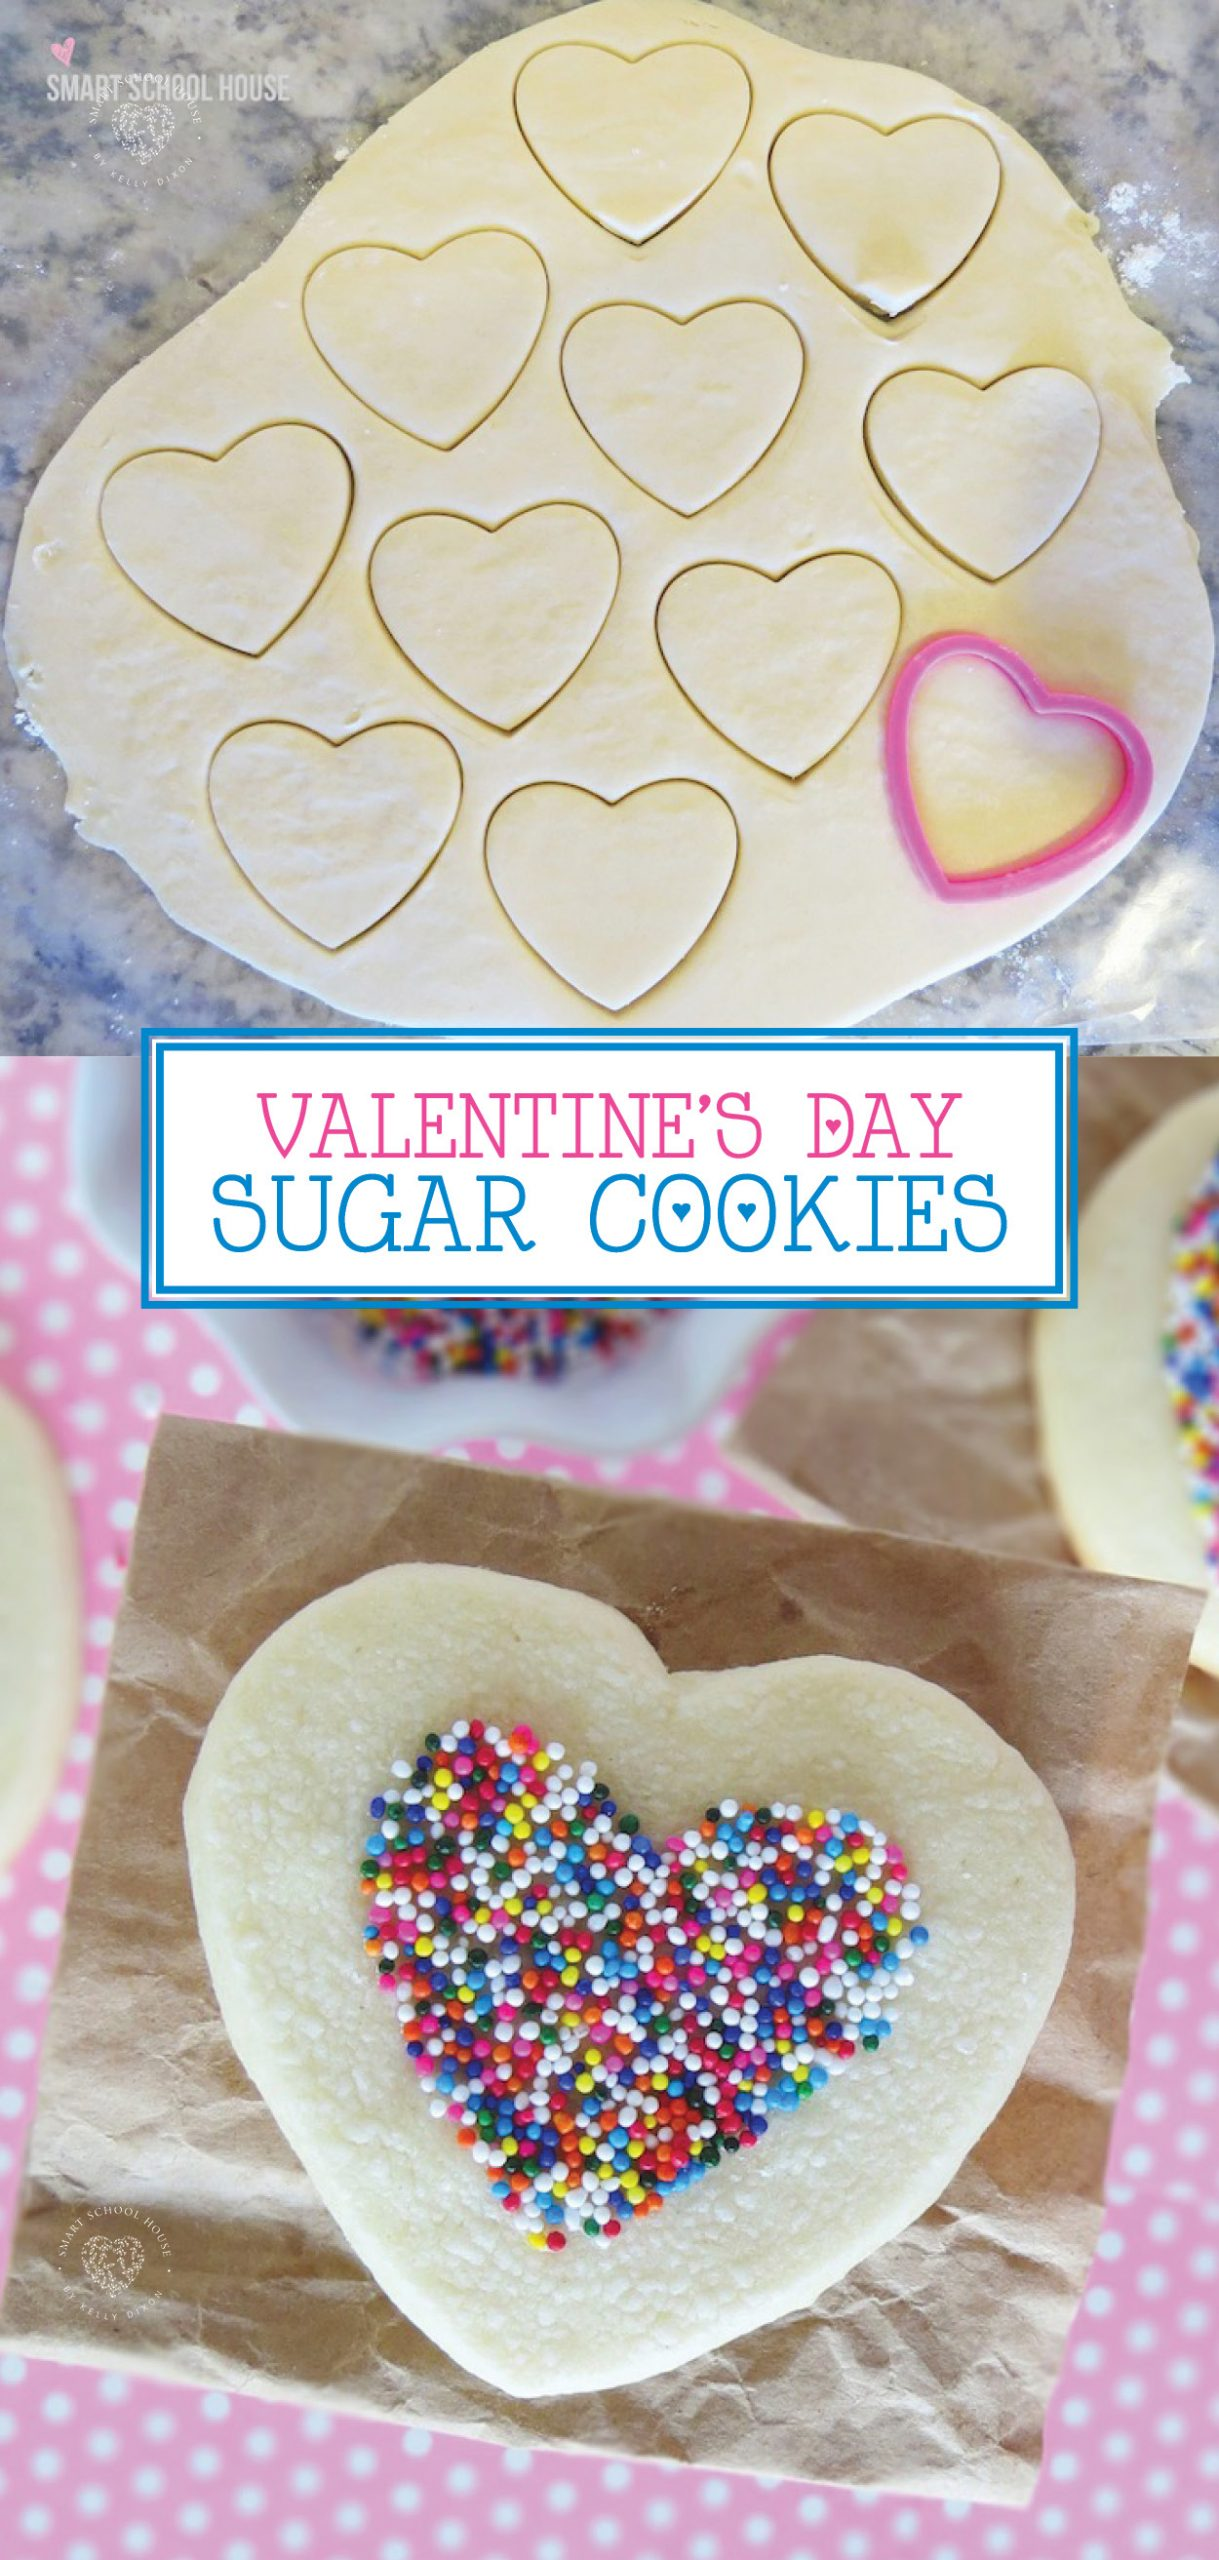 Heart Shaped Sugar Cookies - Easy sugar cookie recipe for Valentines Day